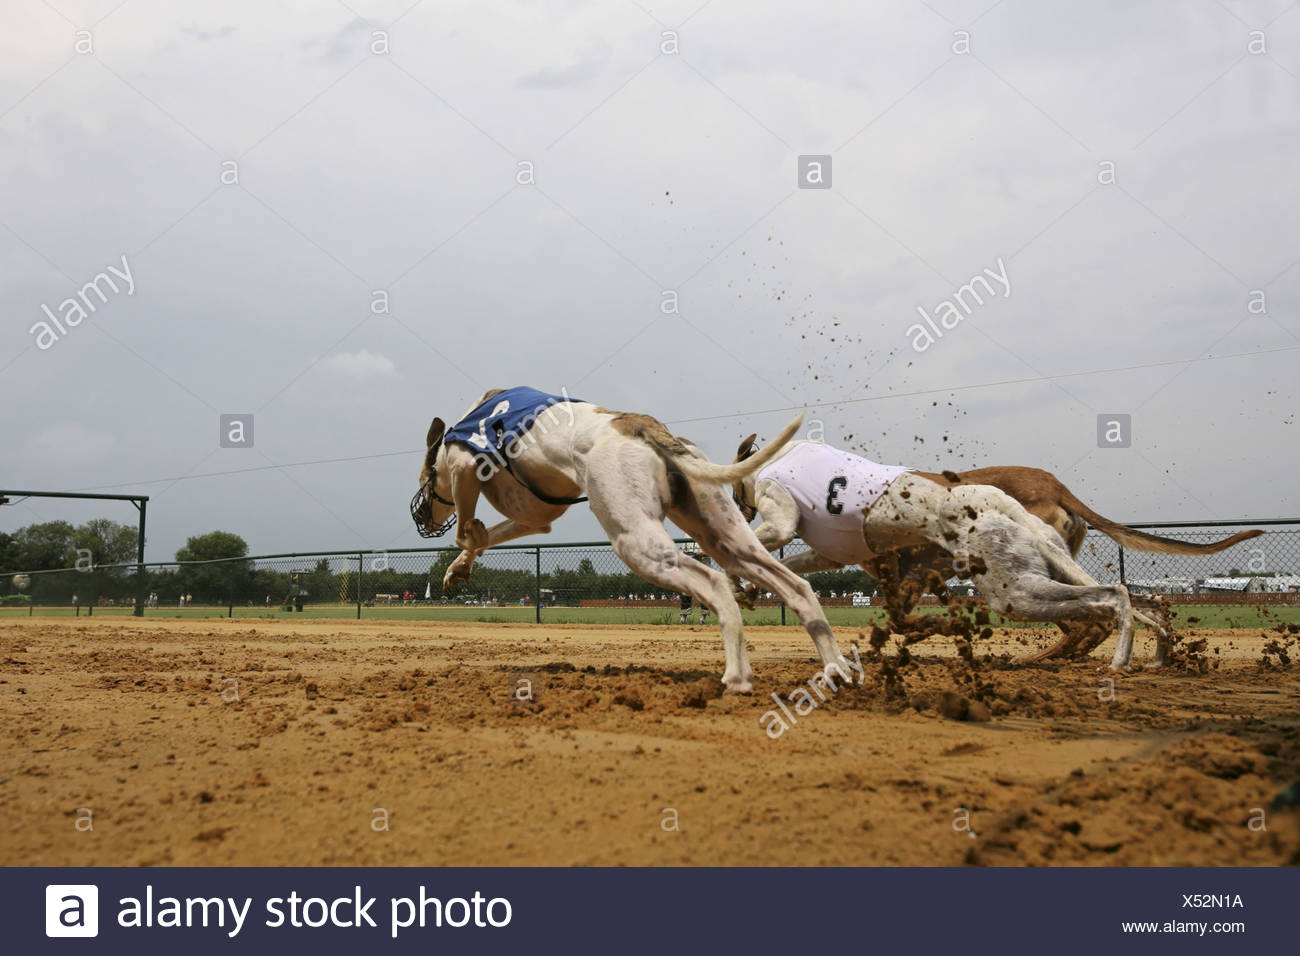 Whippet (Canis lupus f. familiaris), greyhound racing Stock Photo